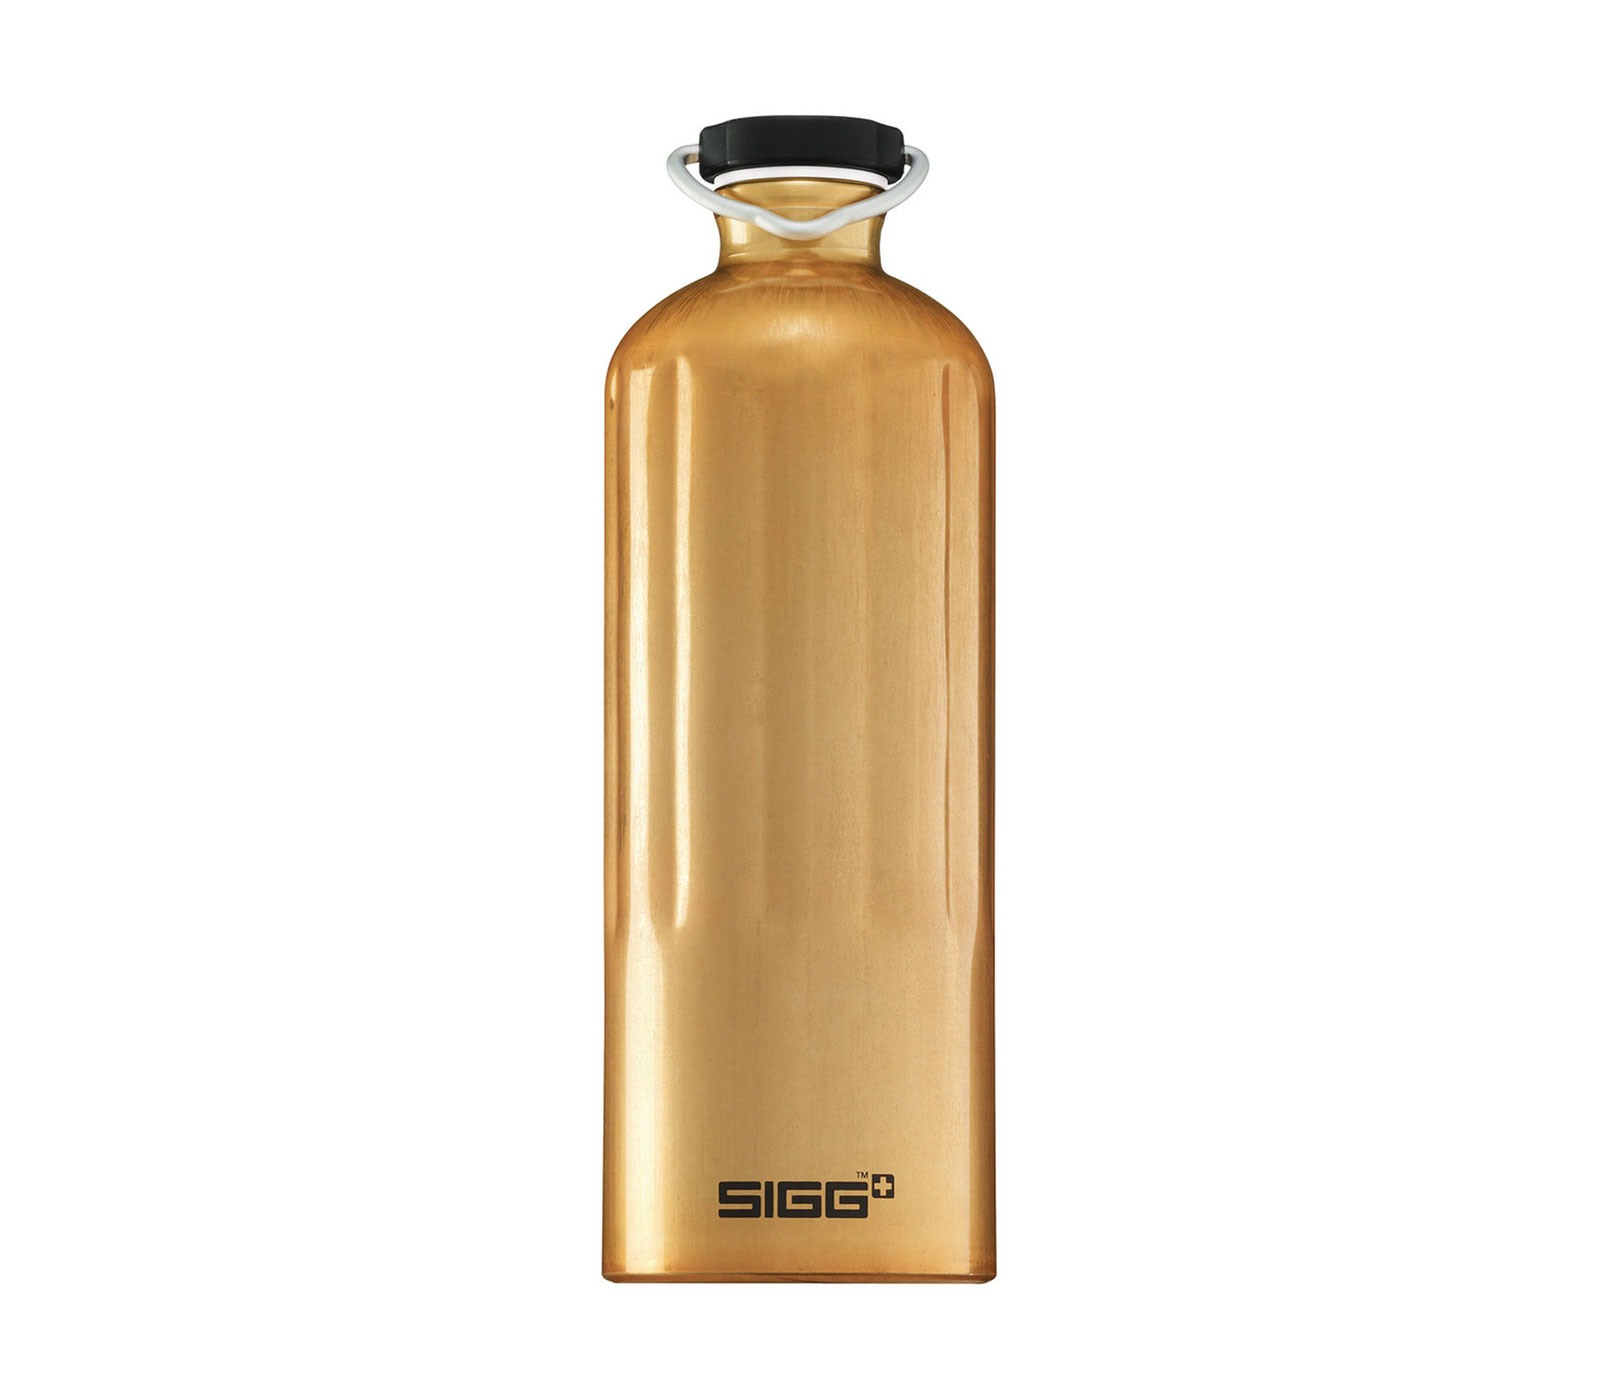 Get A Free Aluminum Water Bottle From Marlboro!